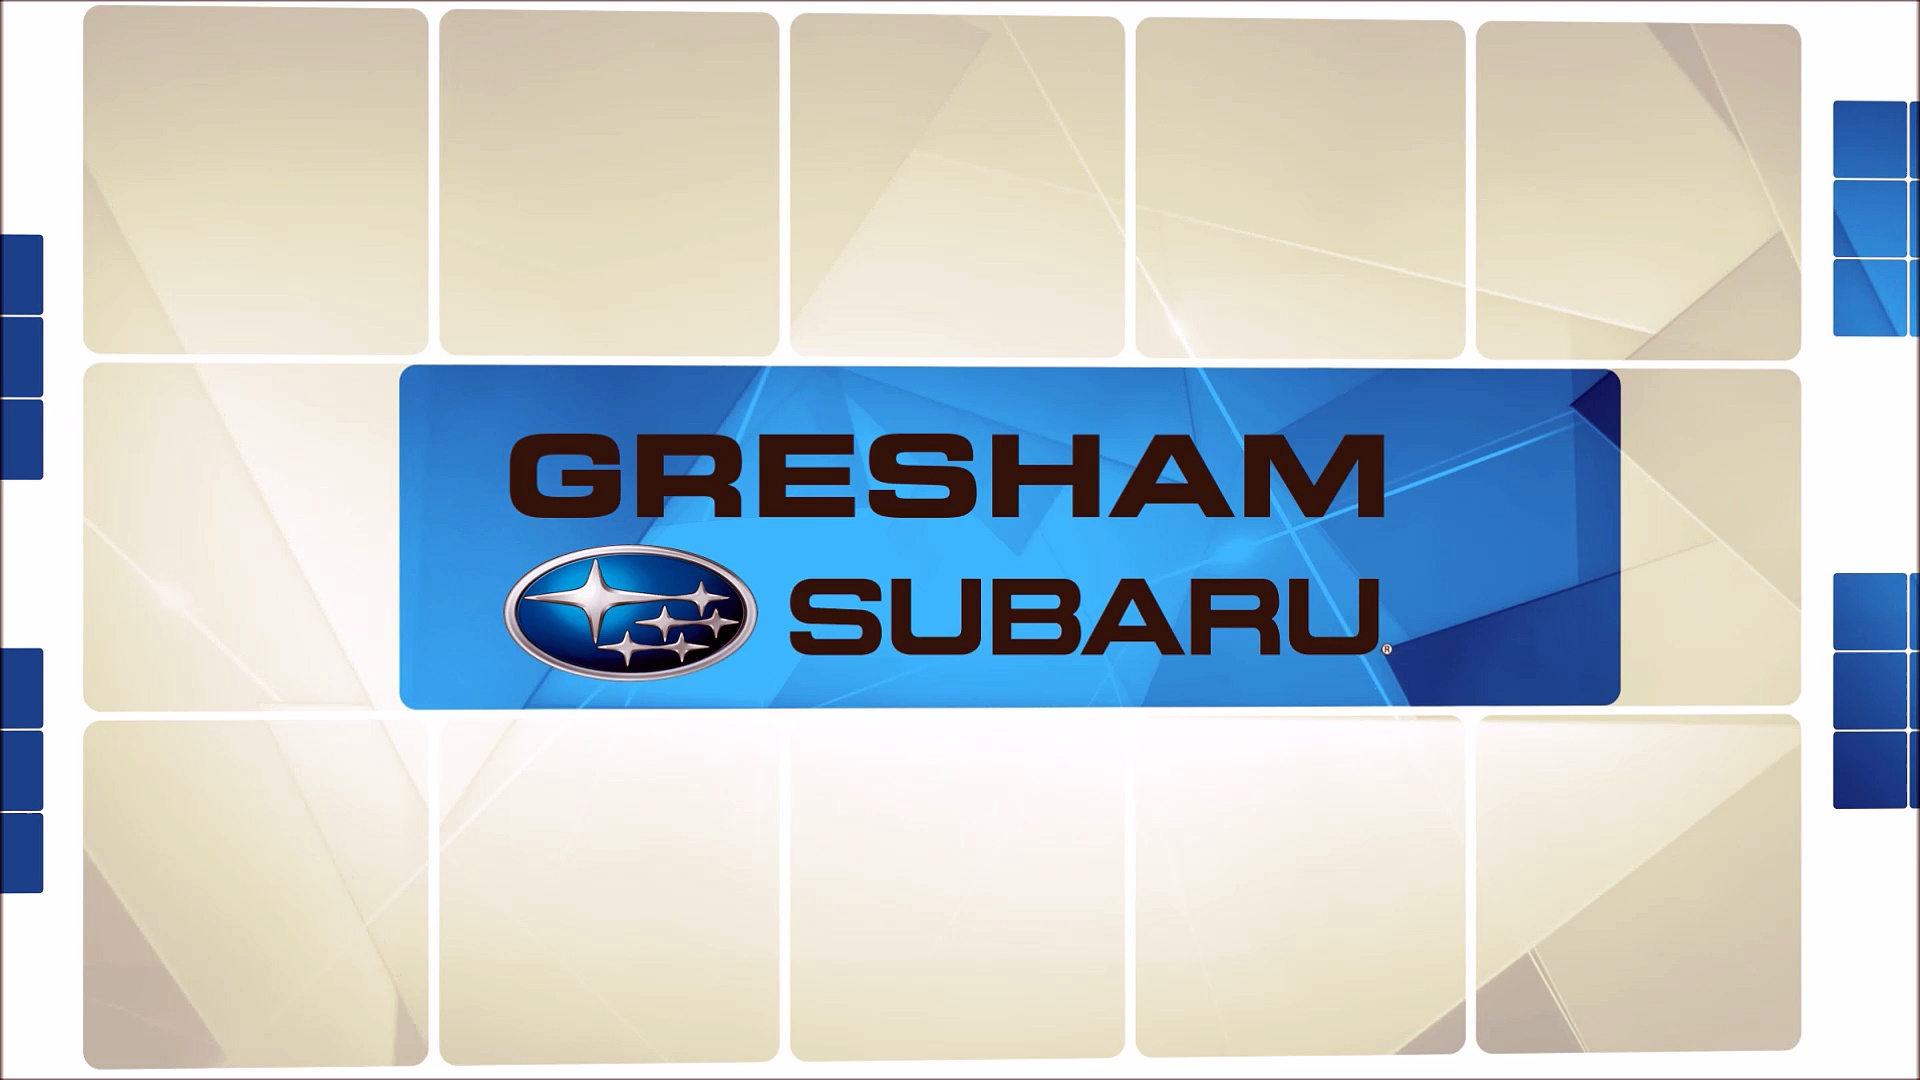 Best Reviewed Subaru Dealership CITYSTATE | Gresham Subaru Reviews